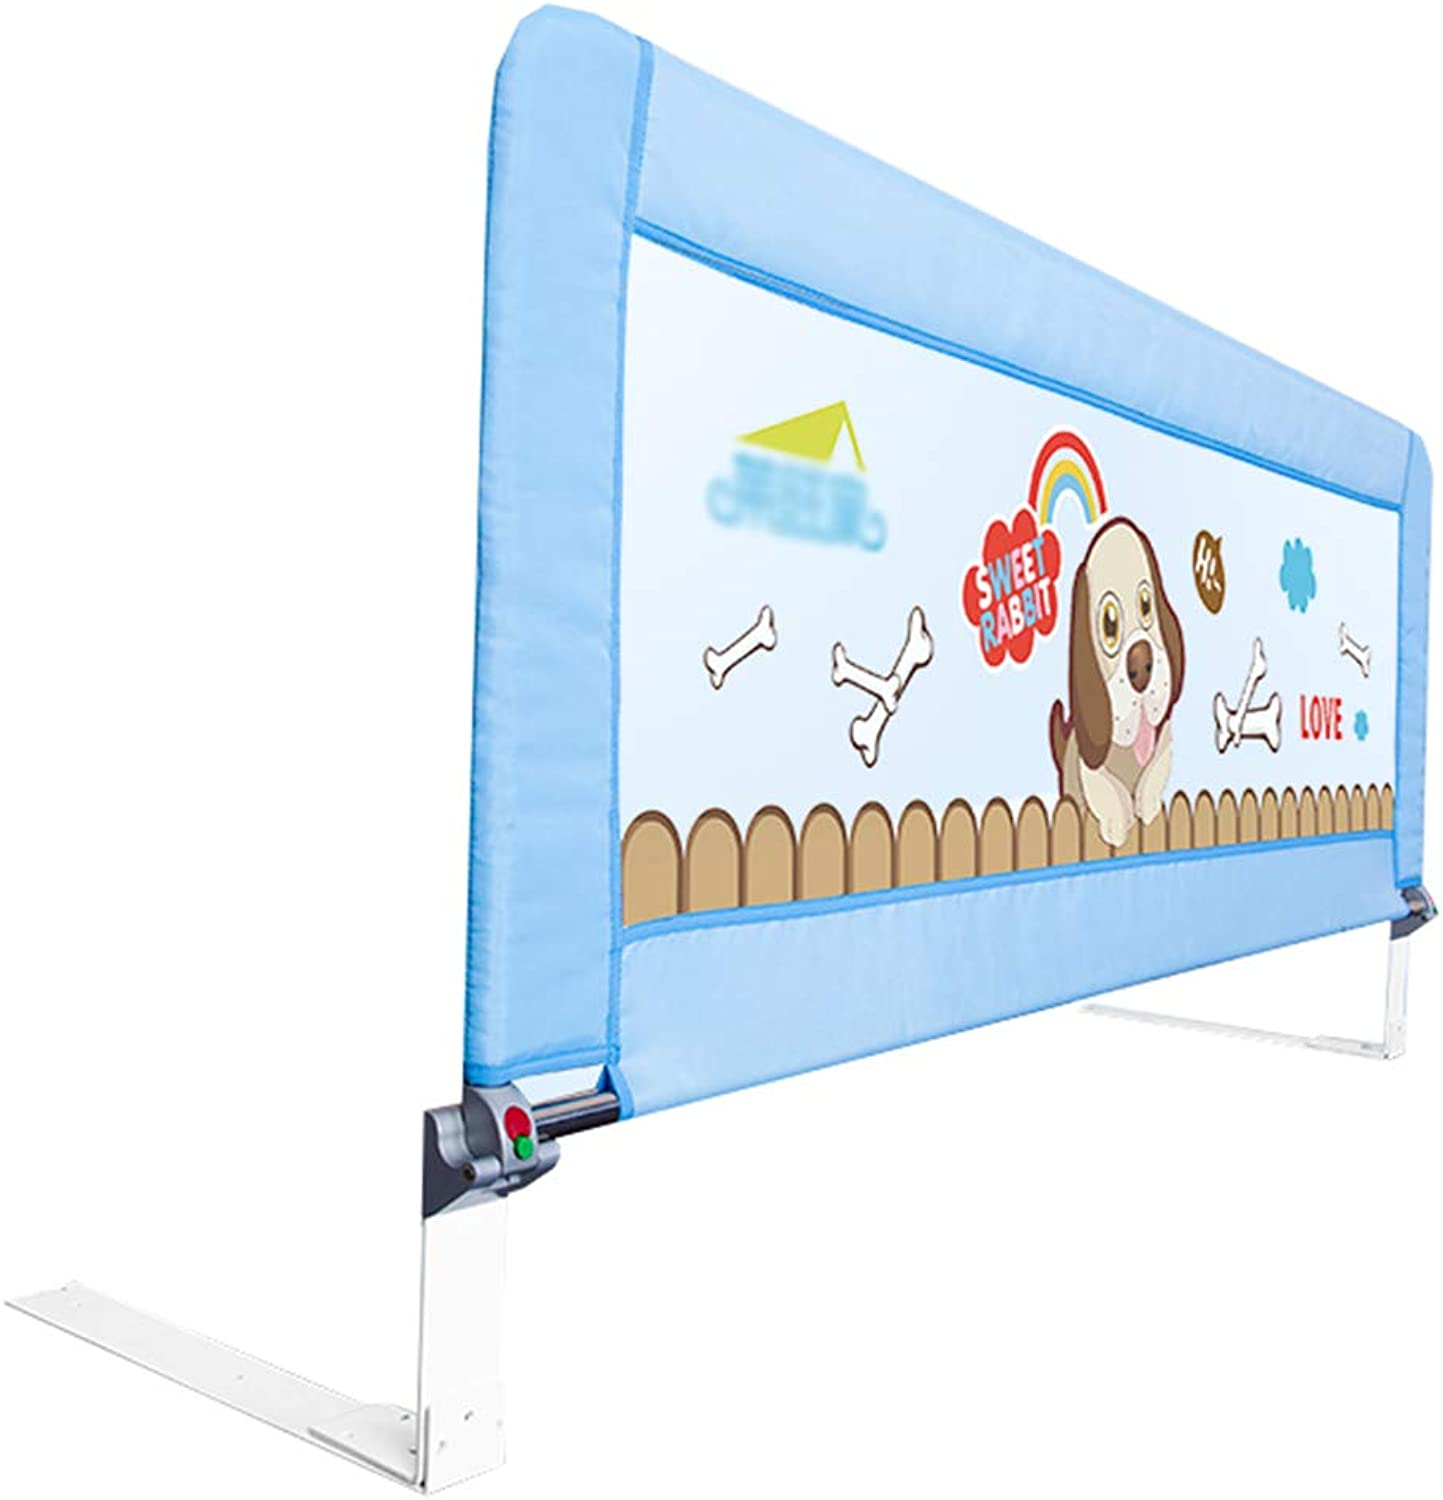 Bedrails Kids Tall Queen Bed Adjustable Folding Toddlers Safety Bed Rails 120cm Long (color   bluee)